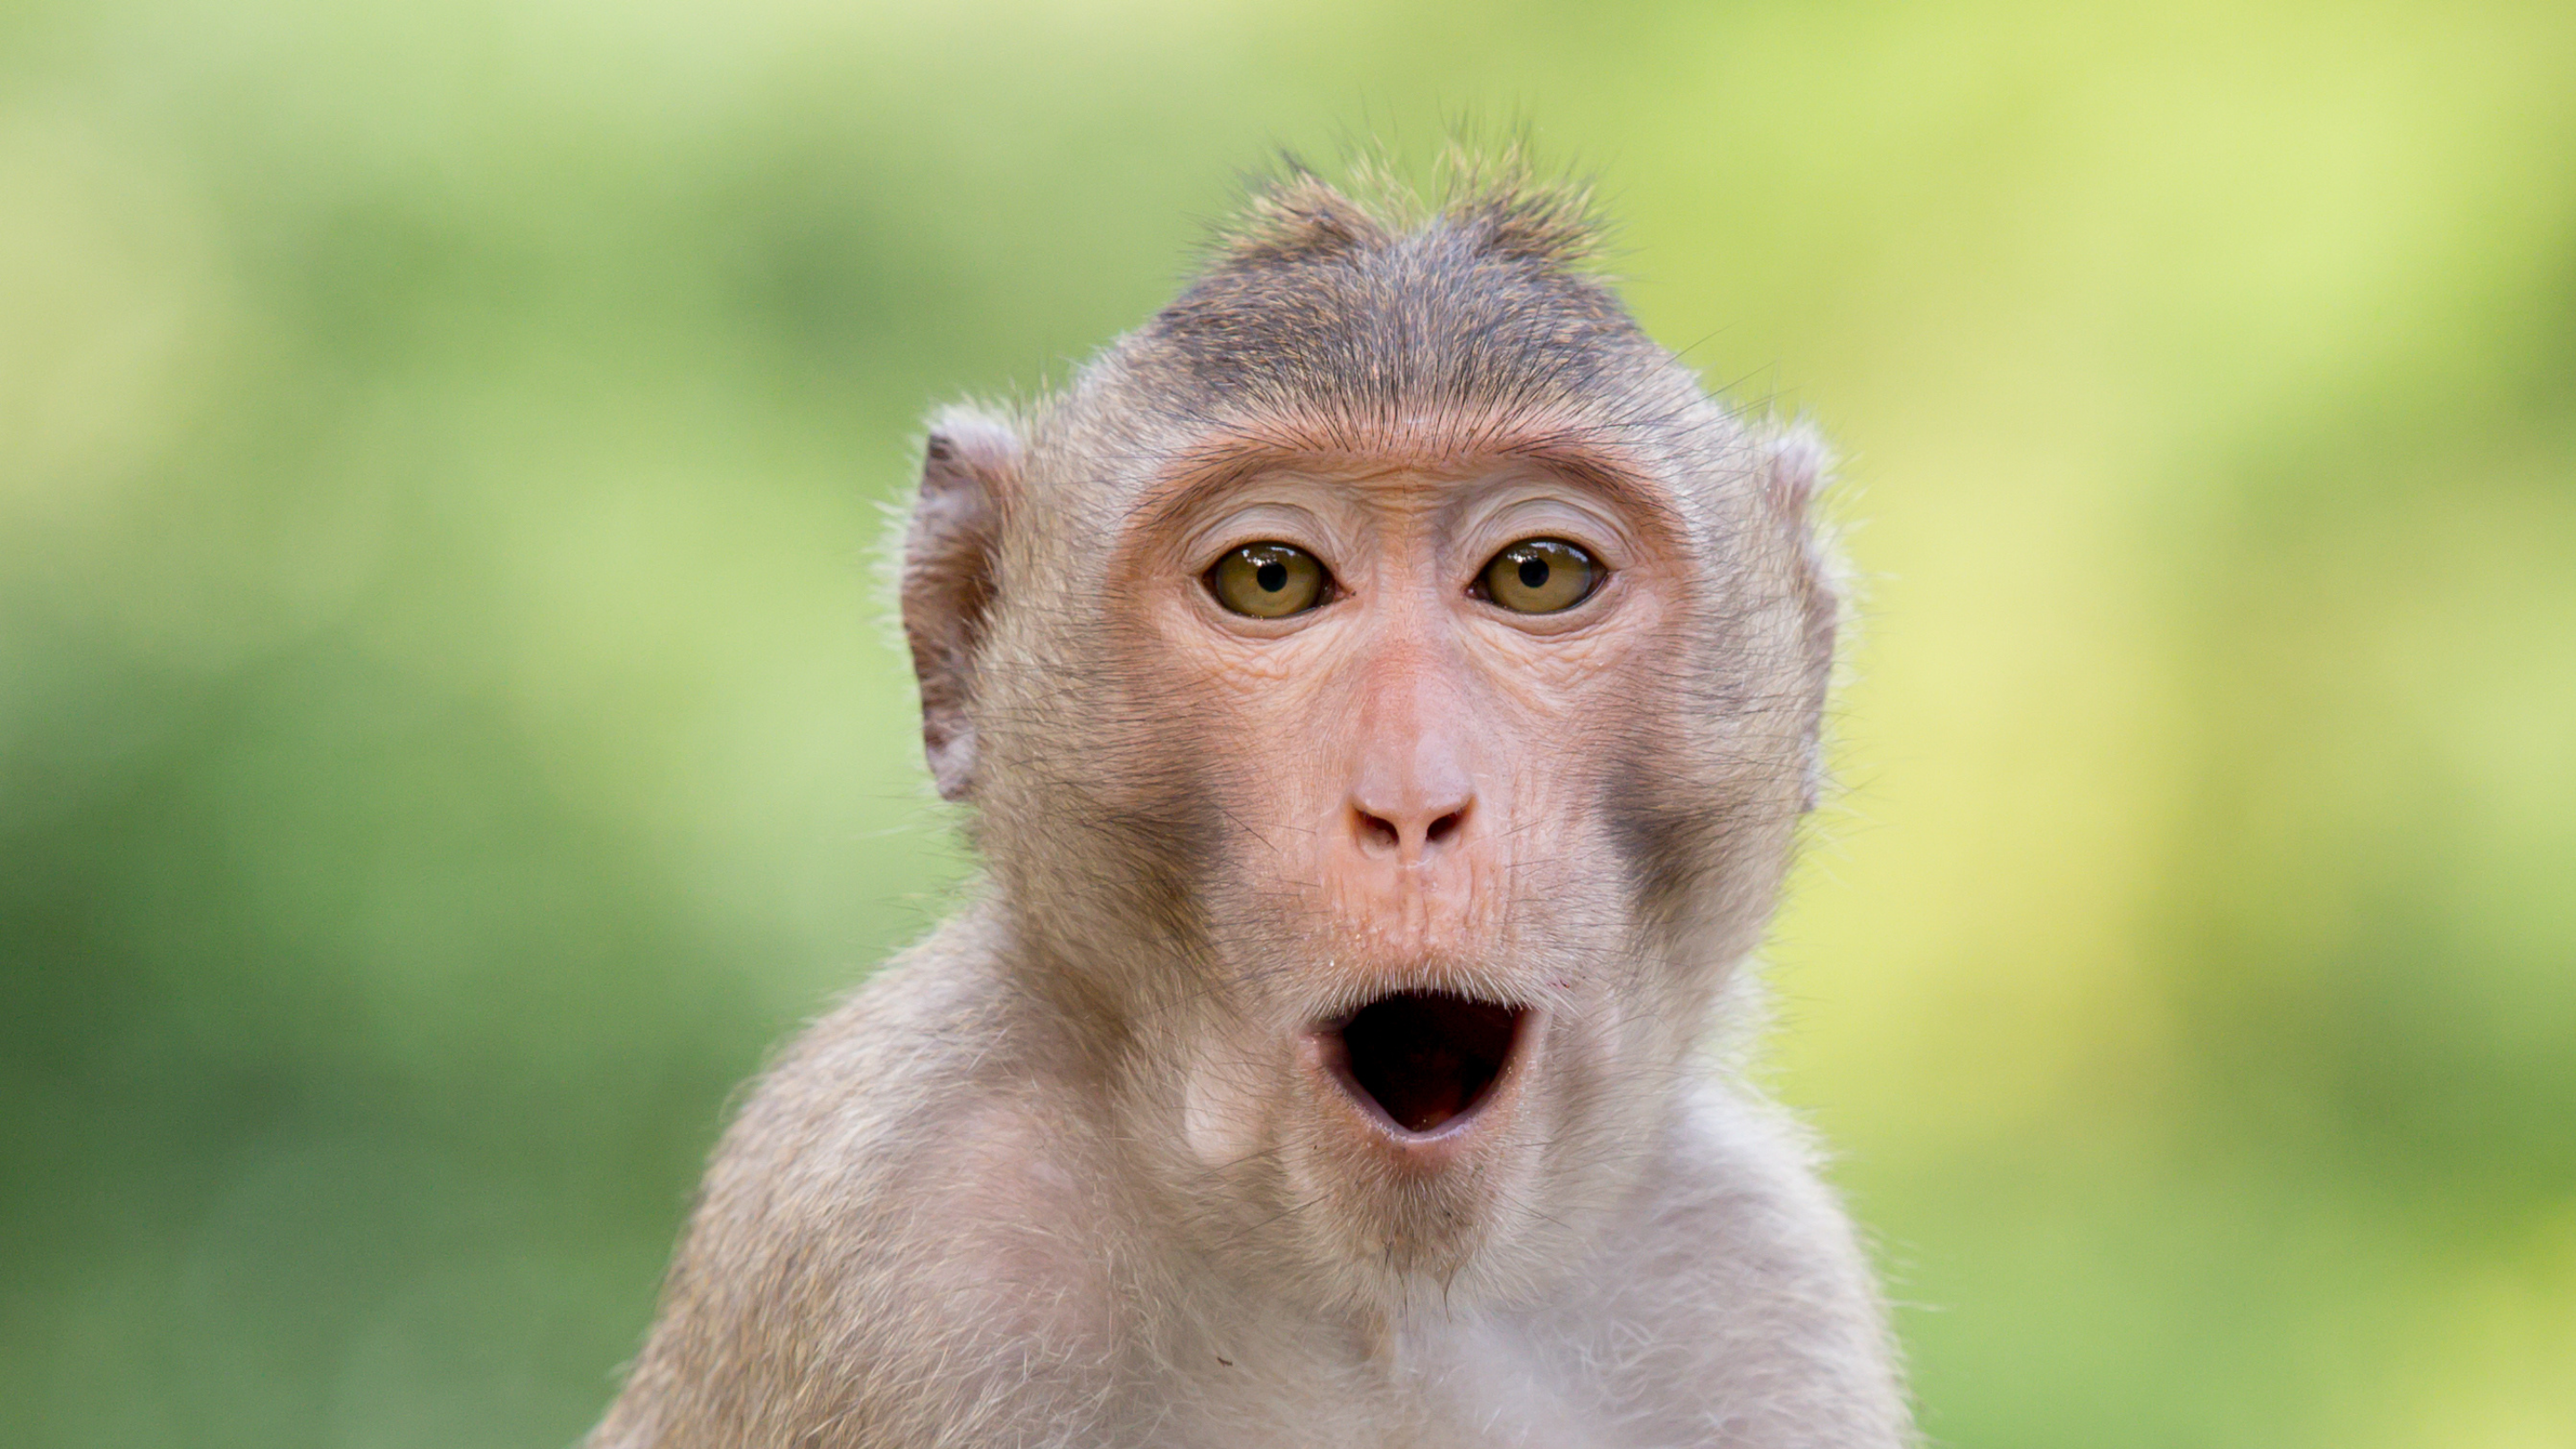 Image of a macaque monkey, open-mouthed and wide-eyed, against a lush green background